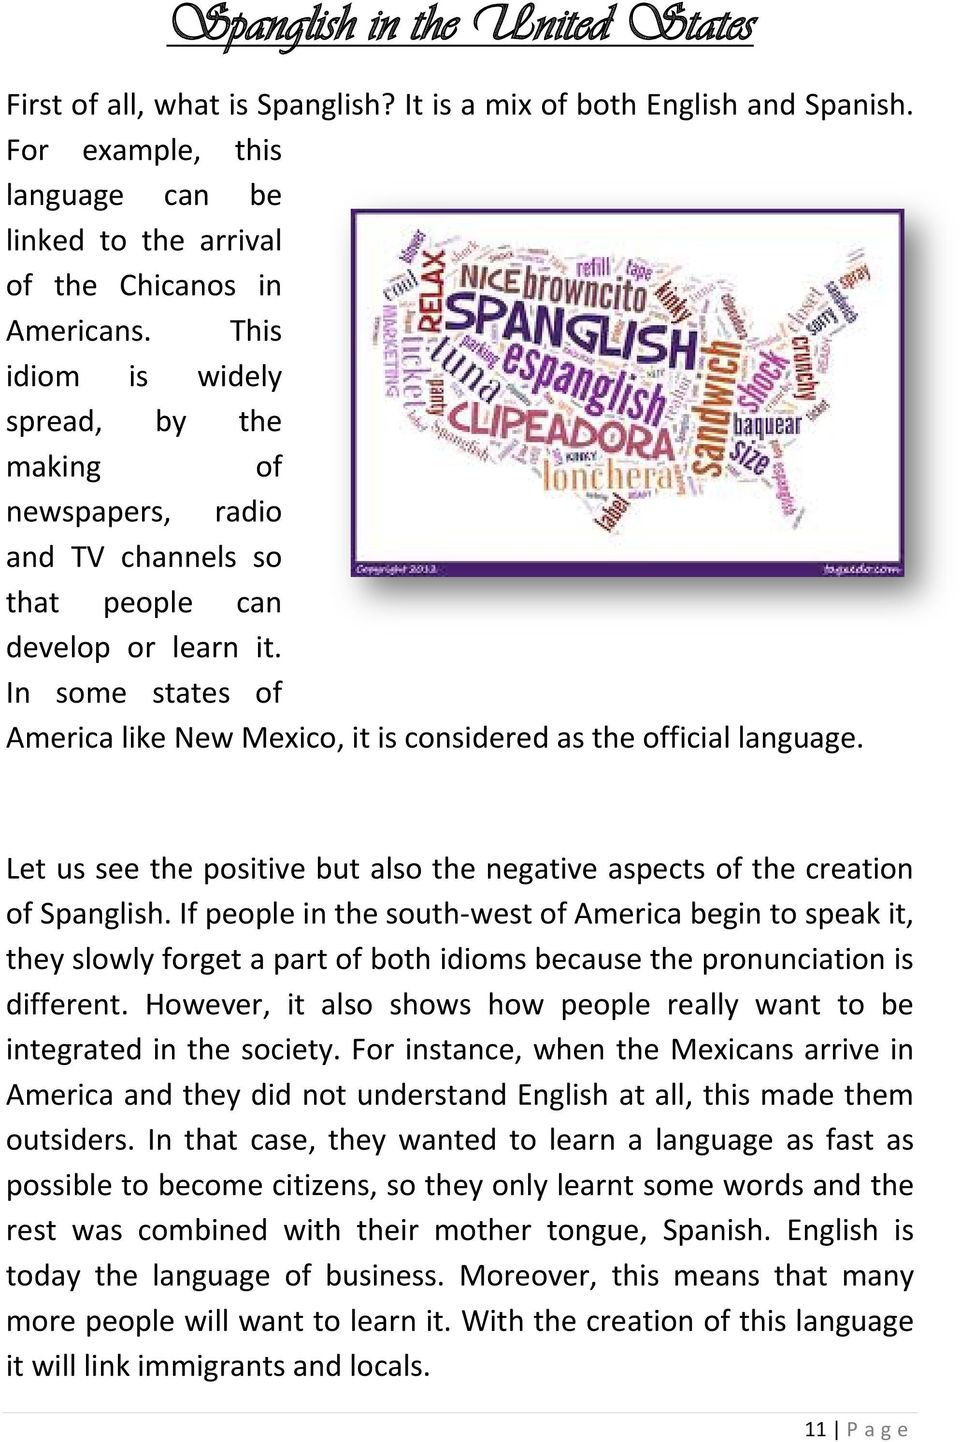 In some states of America like New Mexico, it is considered as the official language. Let us see the positive but also the negative aspects of the creation of Spanglish.